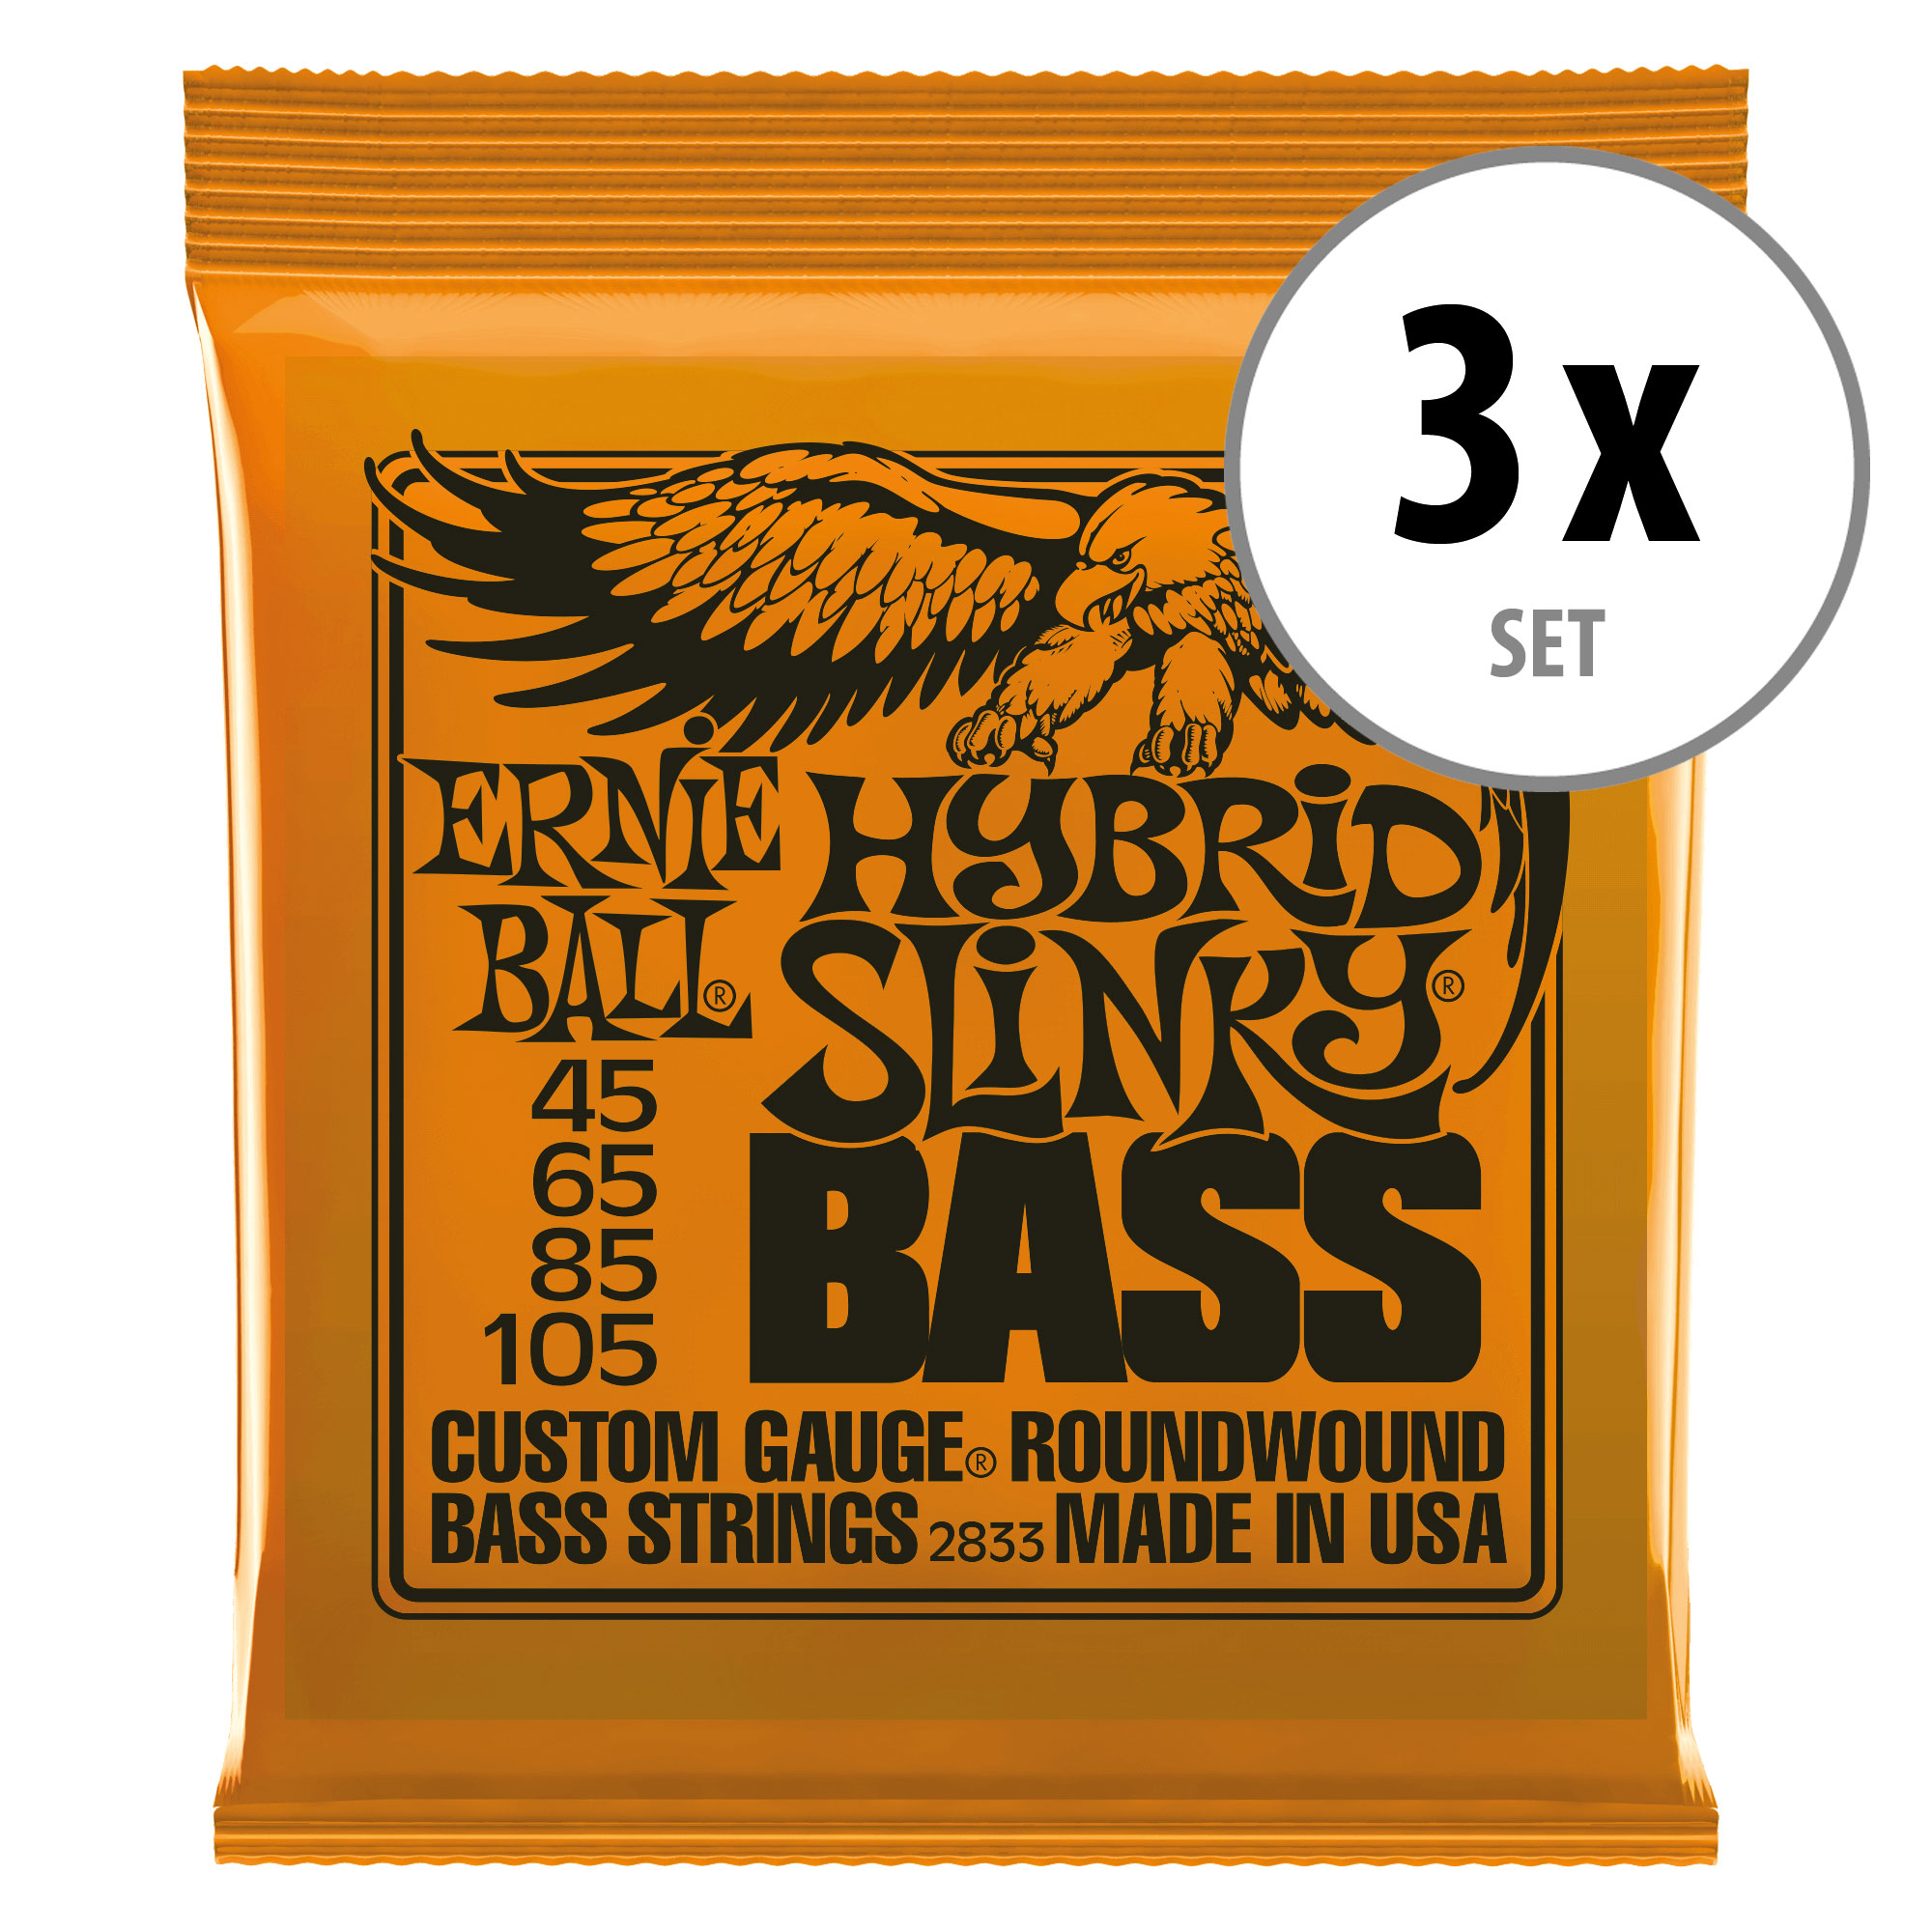 3er Set Ernie Ball 2833 Hybrid Slinky Nickel Wound